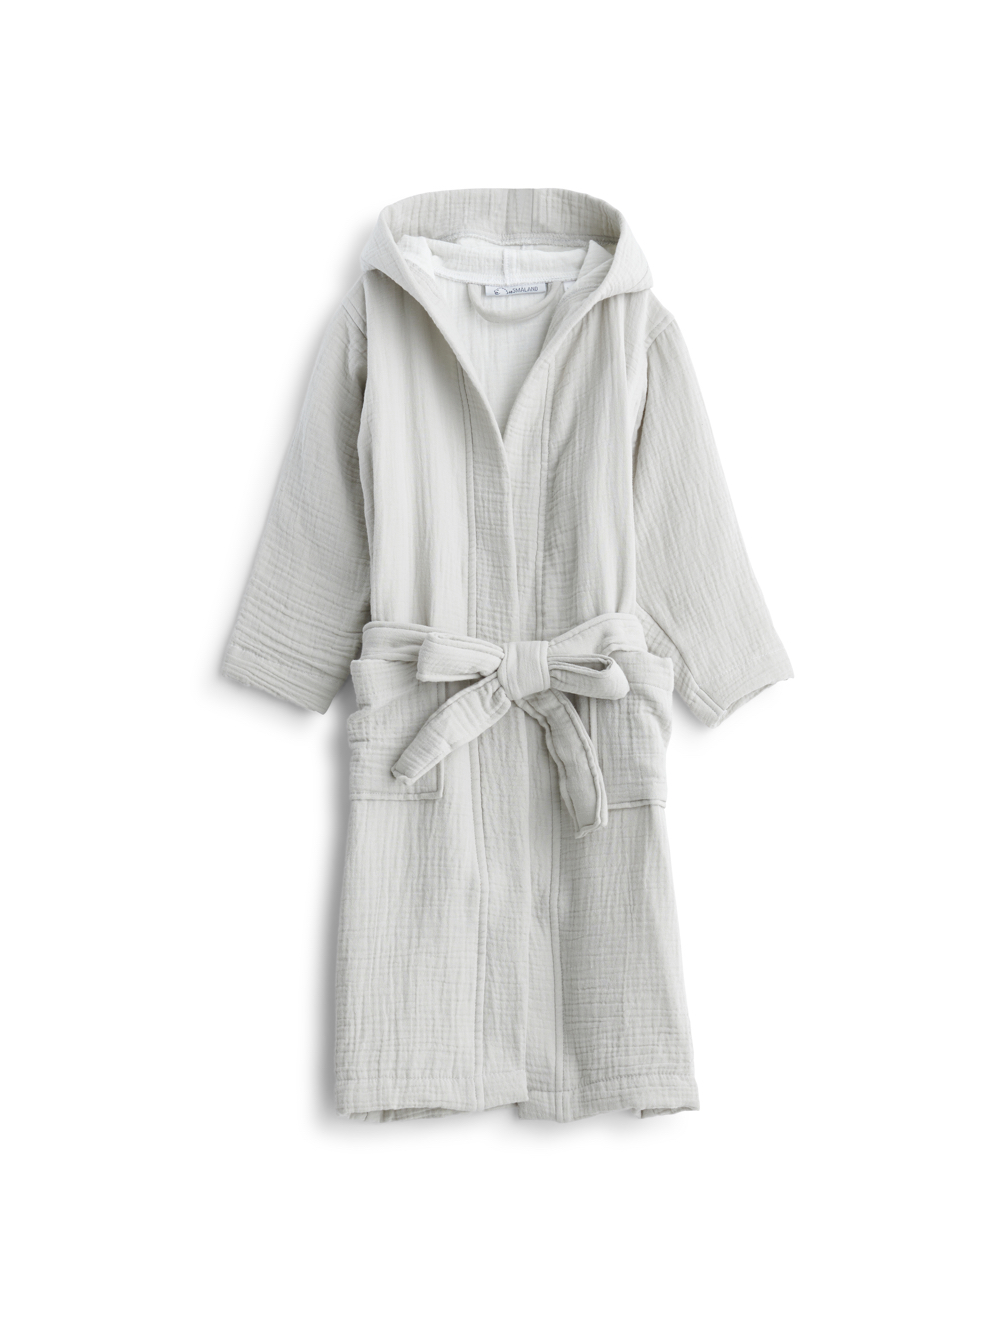 Kids Muslin Bathrobe Light Grey